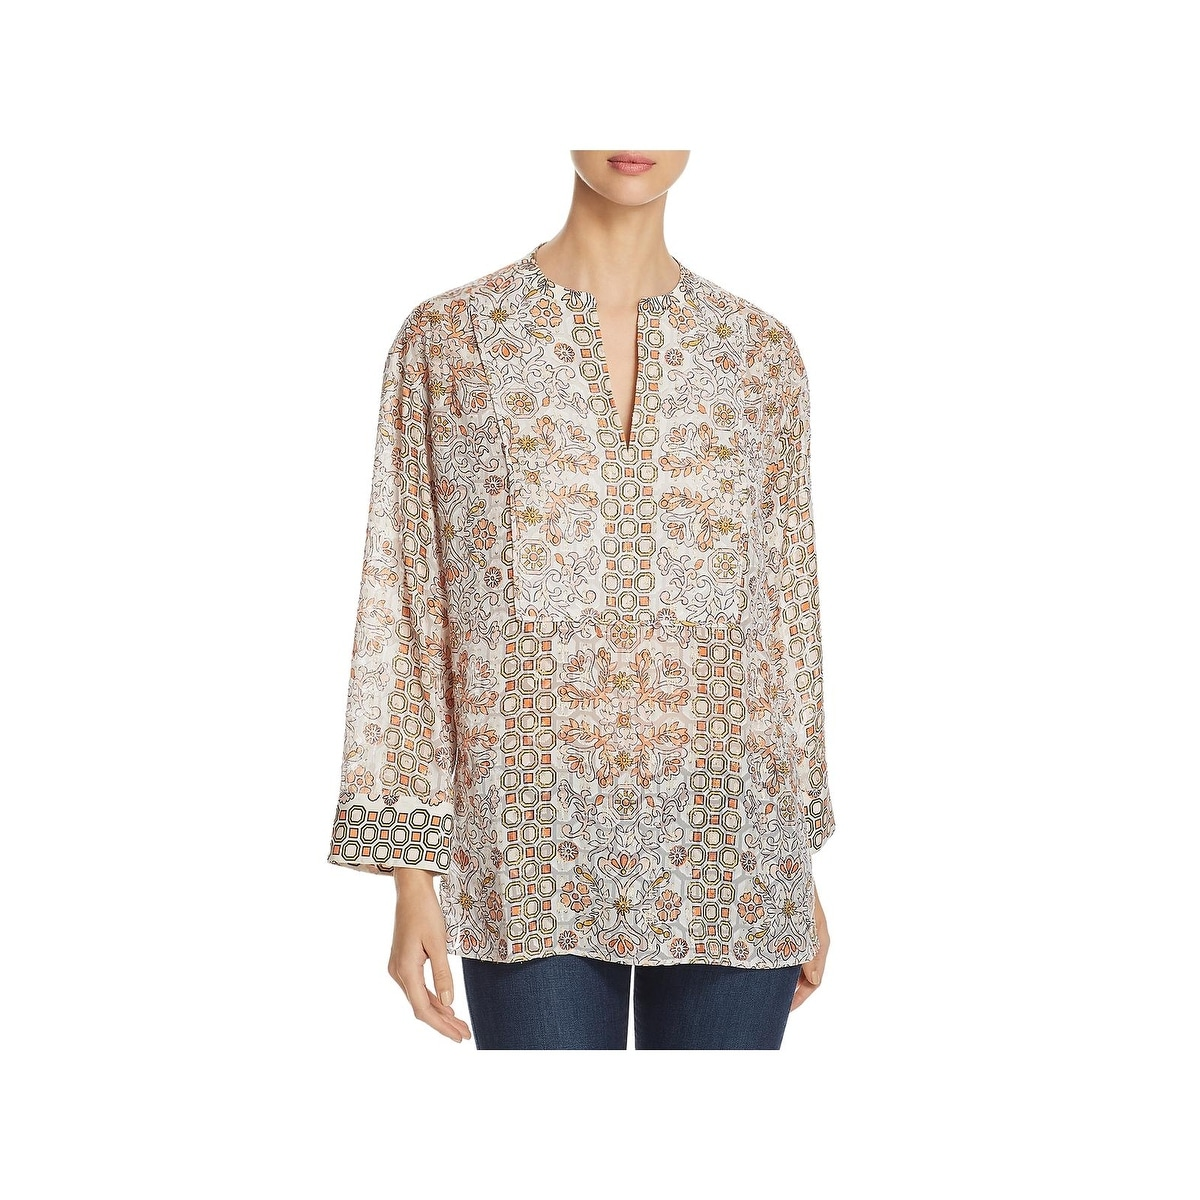 b335e01f1ee Tory Burch Tops | Find Great Women's Clothing Deals Shopping at Overstock